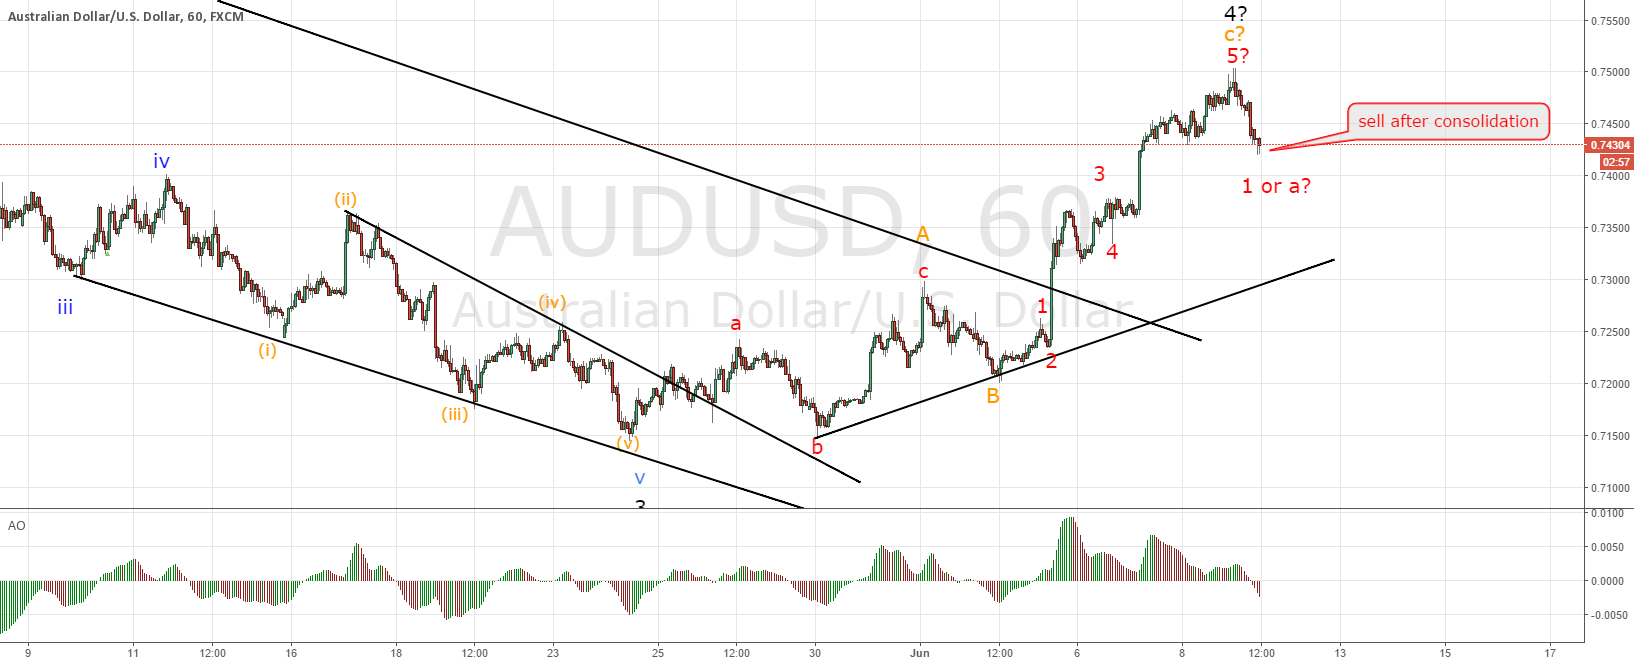 AUDUSD according to plan, follow up